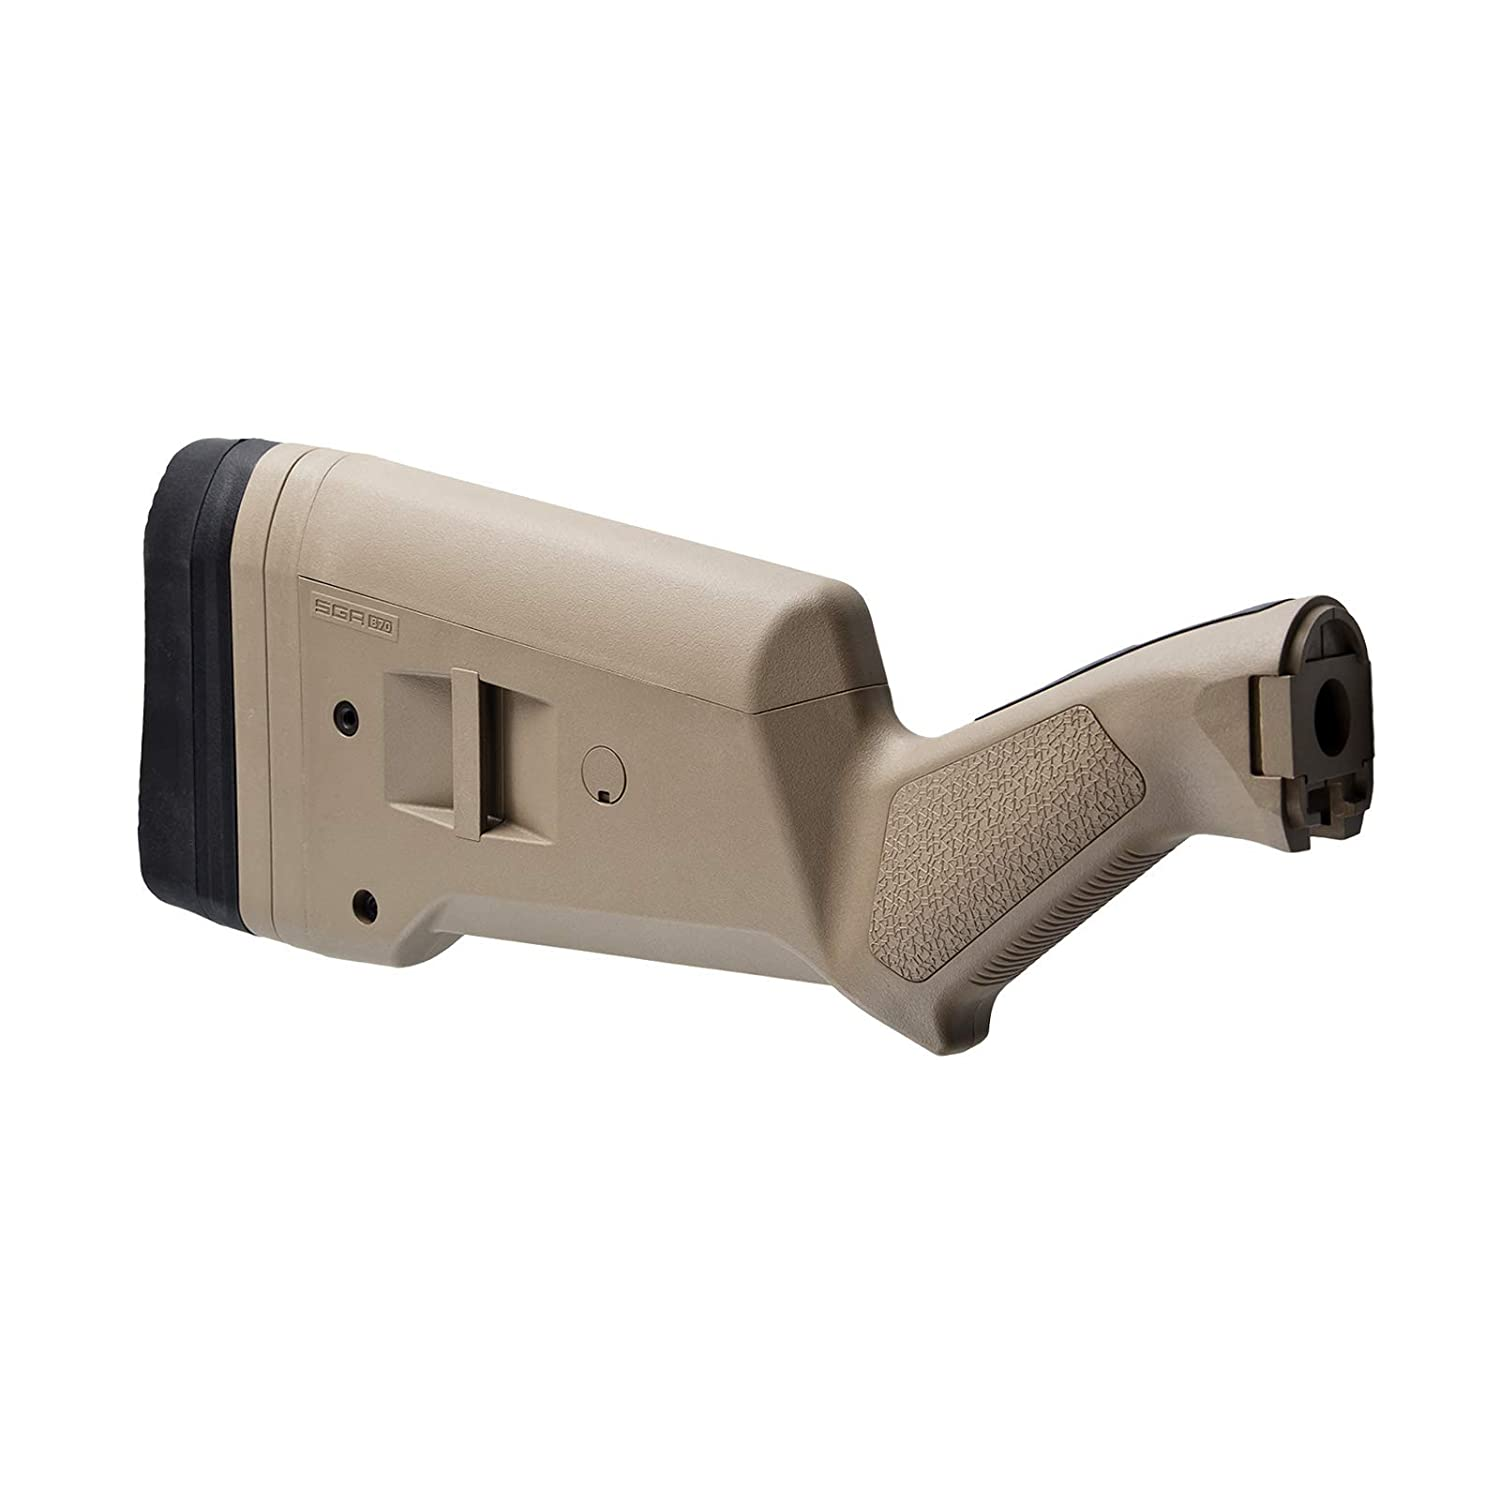 Magpul Sga Remington 870 Shotgun Stock Flat Dark Earth 1100 Parts And Stocks Pump Gun Sports Outdoors